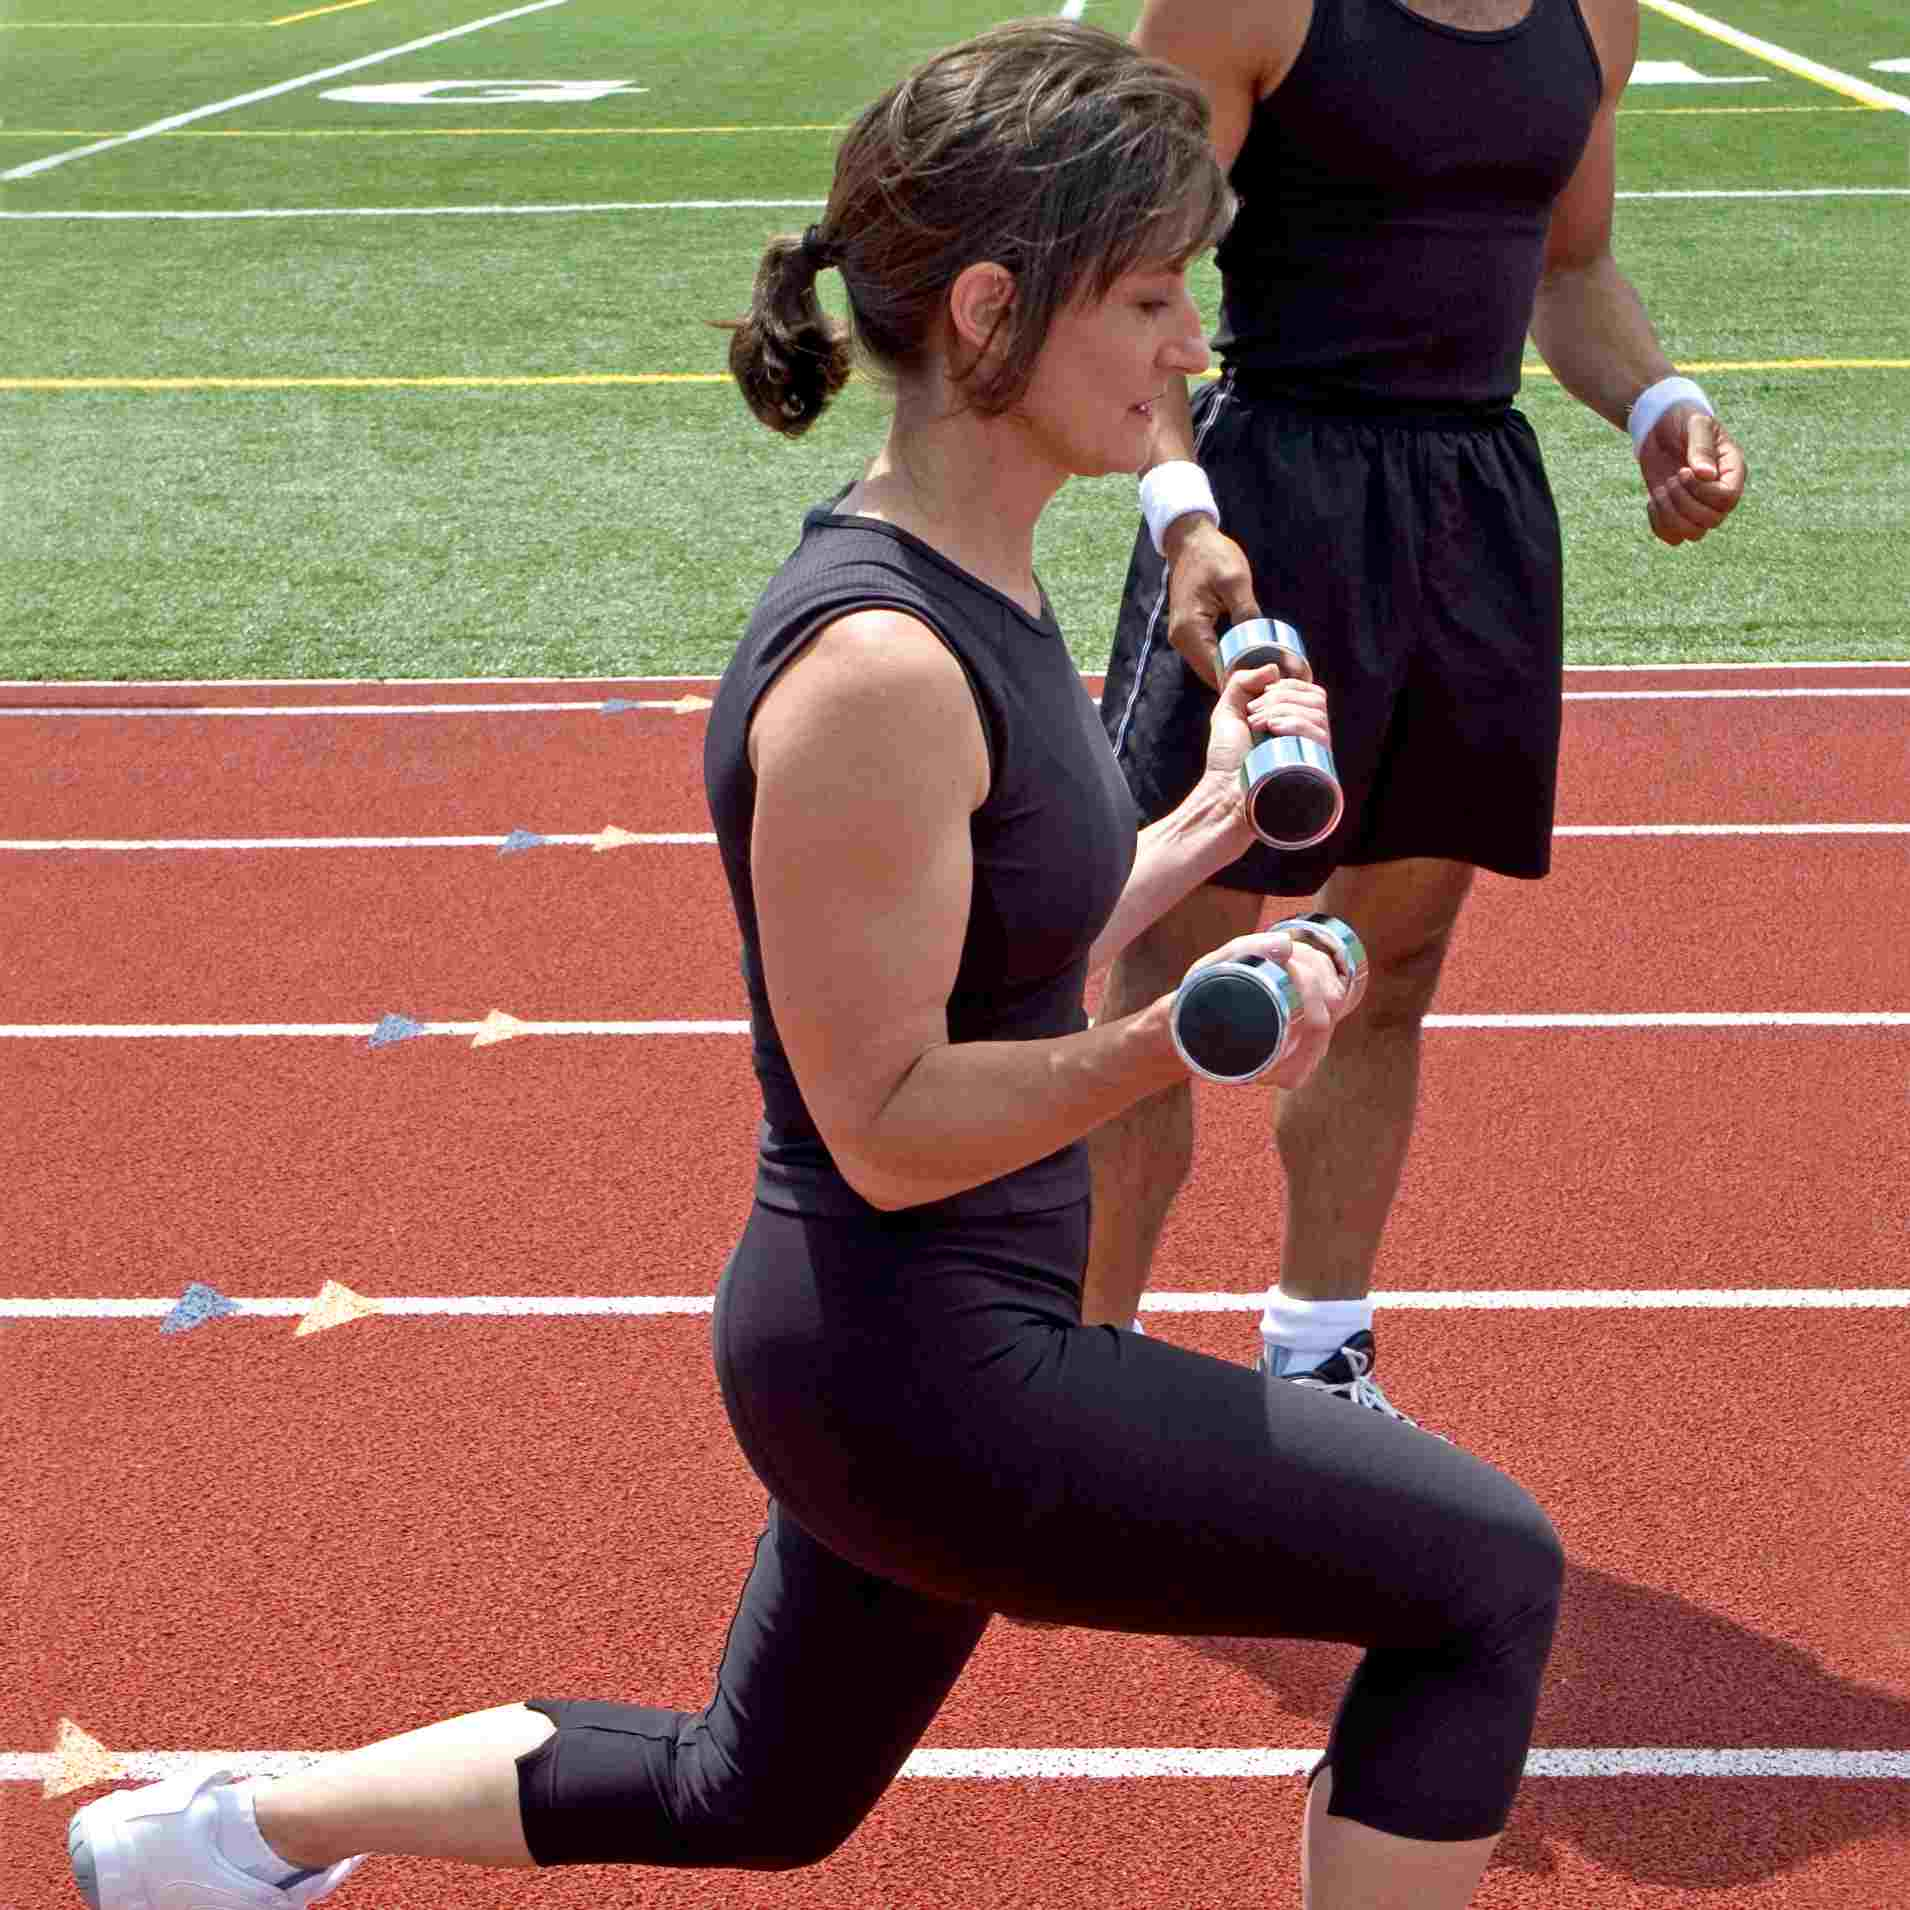 Outdoor Workout on Track with a trainer